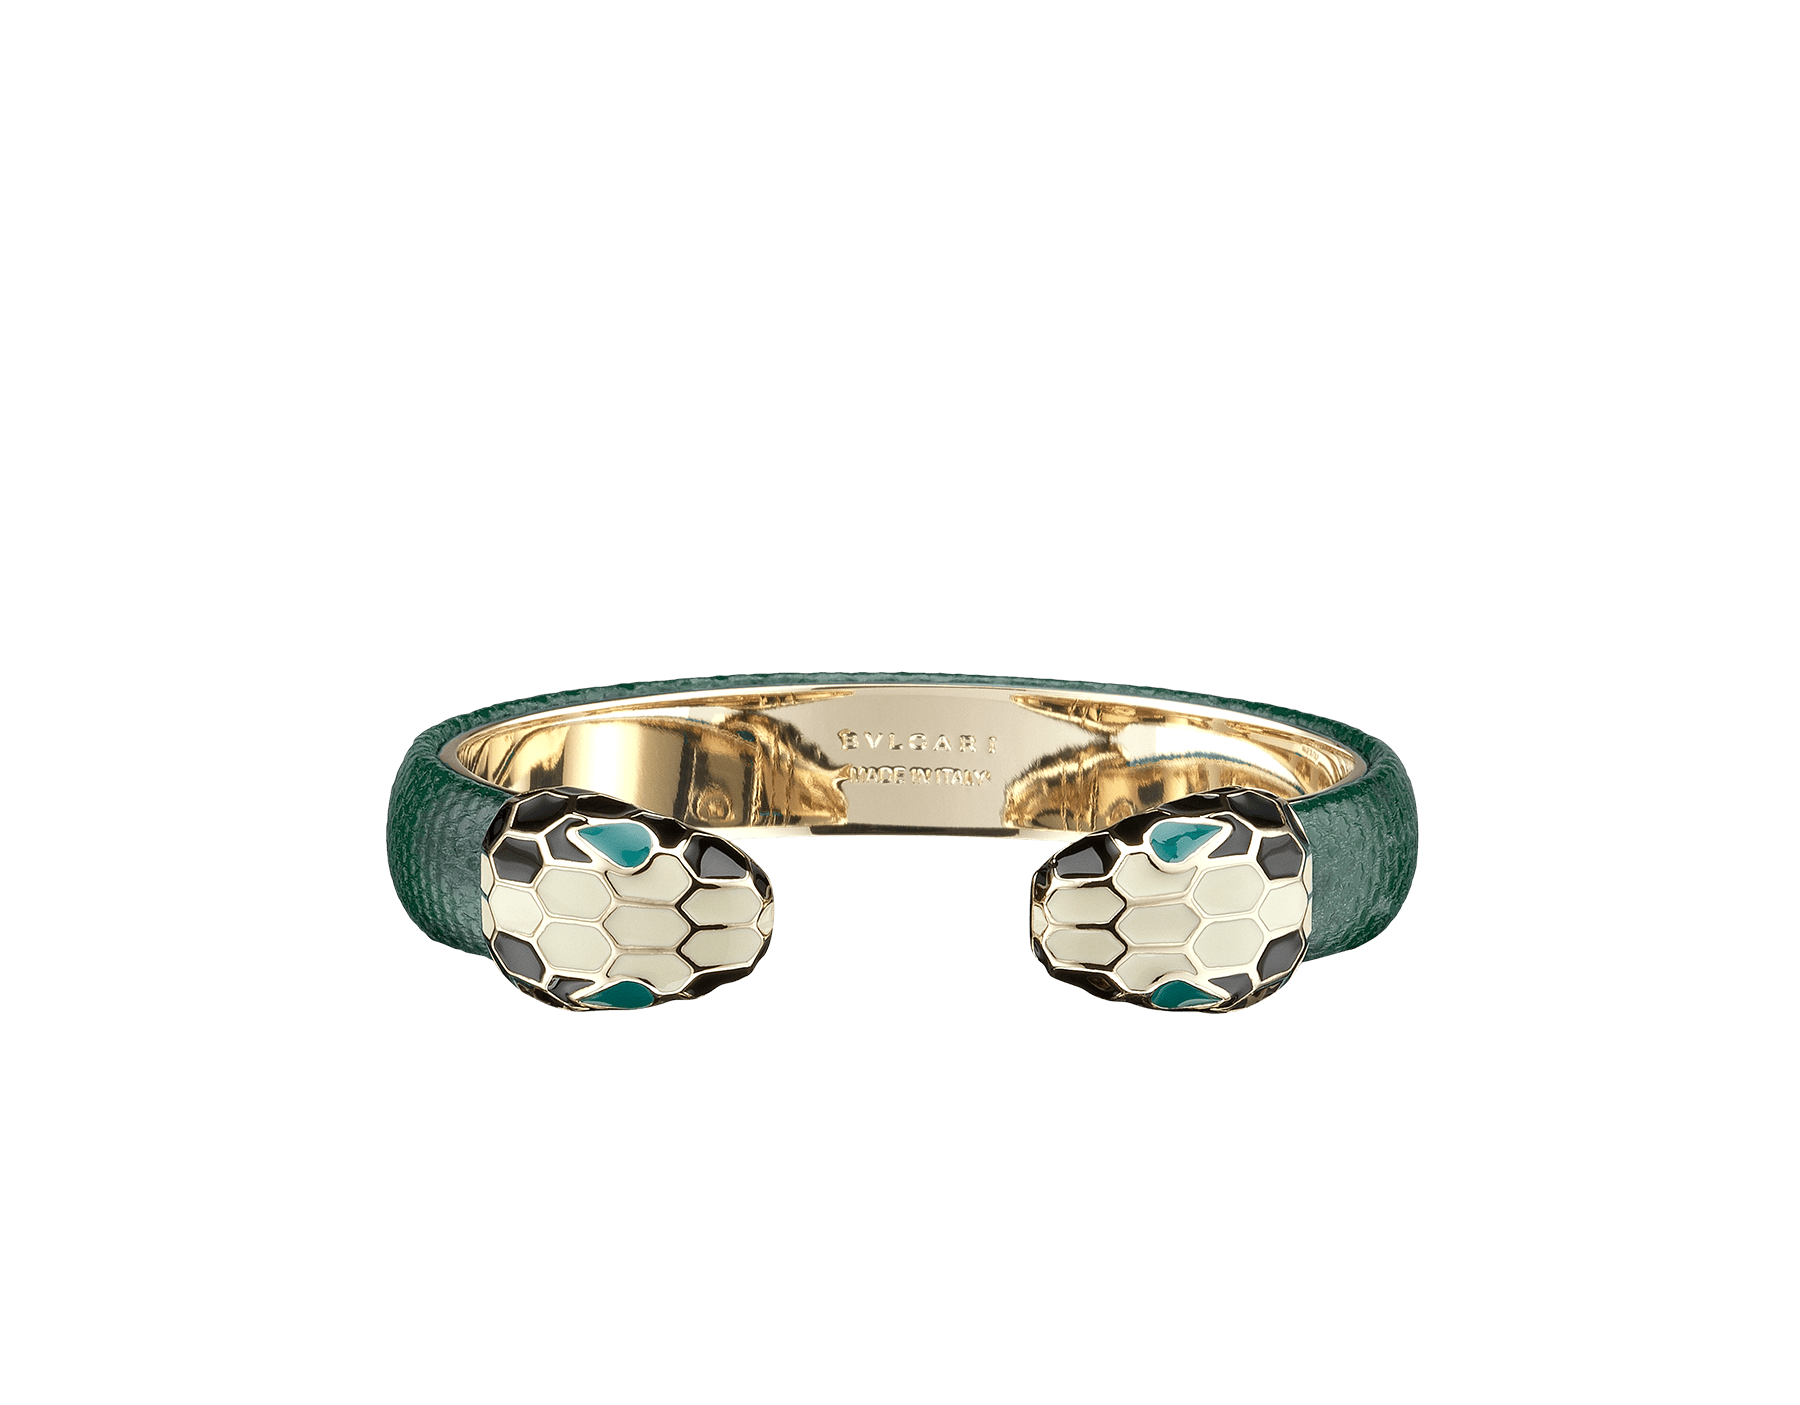 Bracelet in forest emerald shiny karung skin with iconic contraire brass light gold plated Serpenti heads motif in black and white enamel with green enamel eyes. SPContr-SK-FE image 1